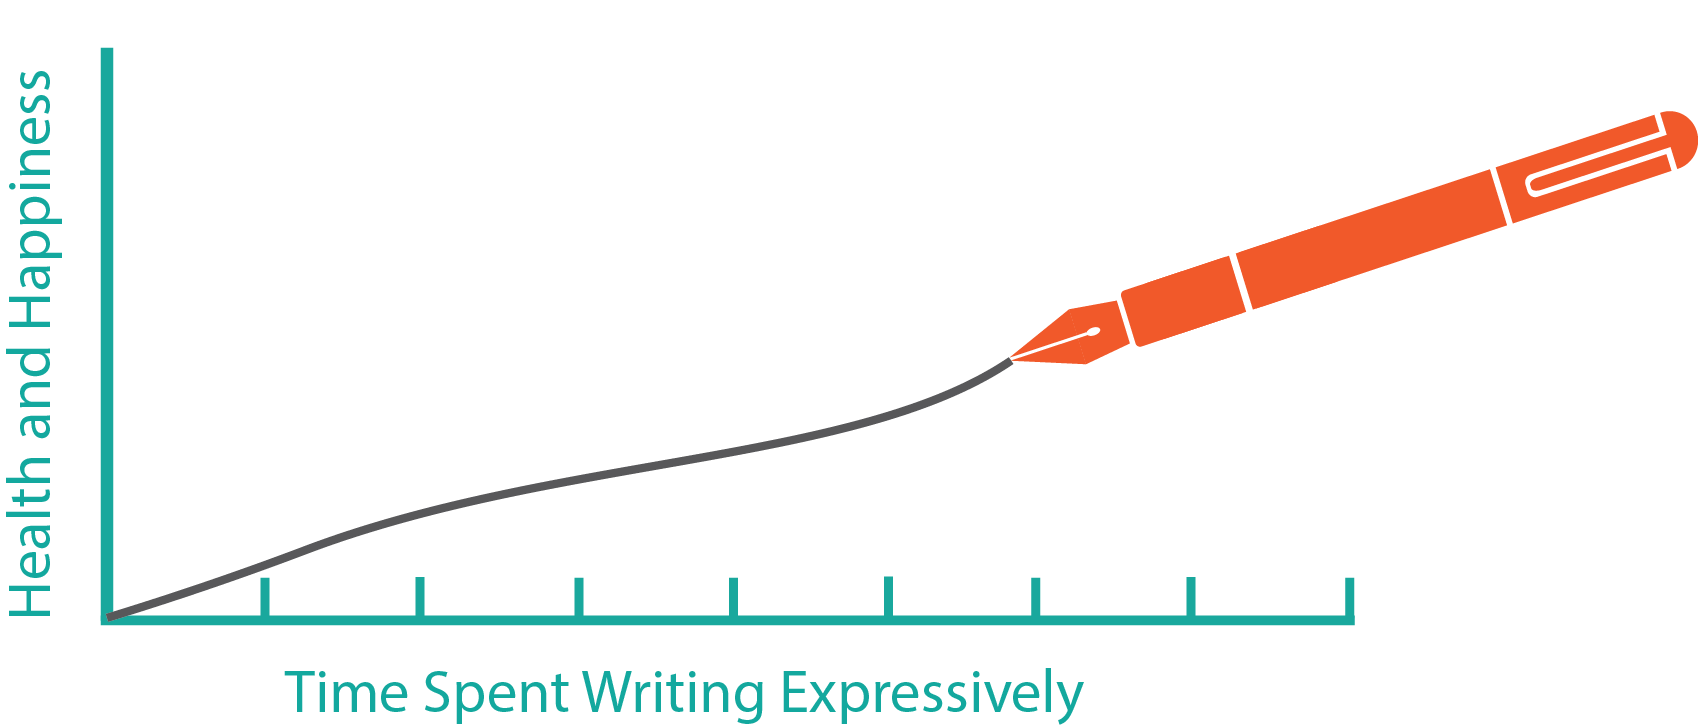 Graph showing how expressing writing can make you happier